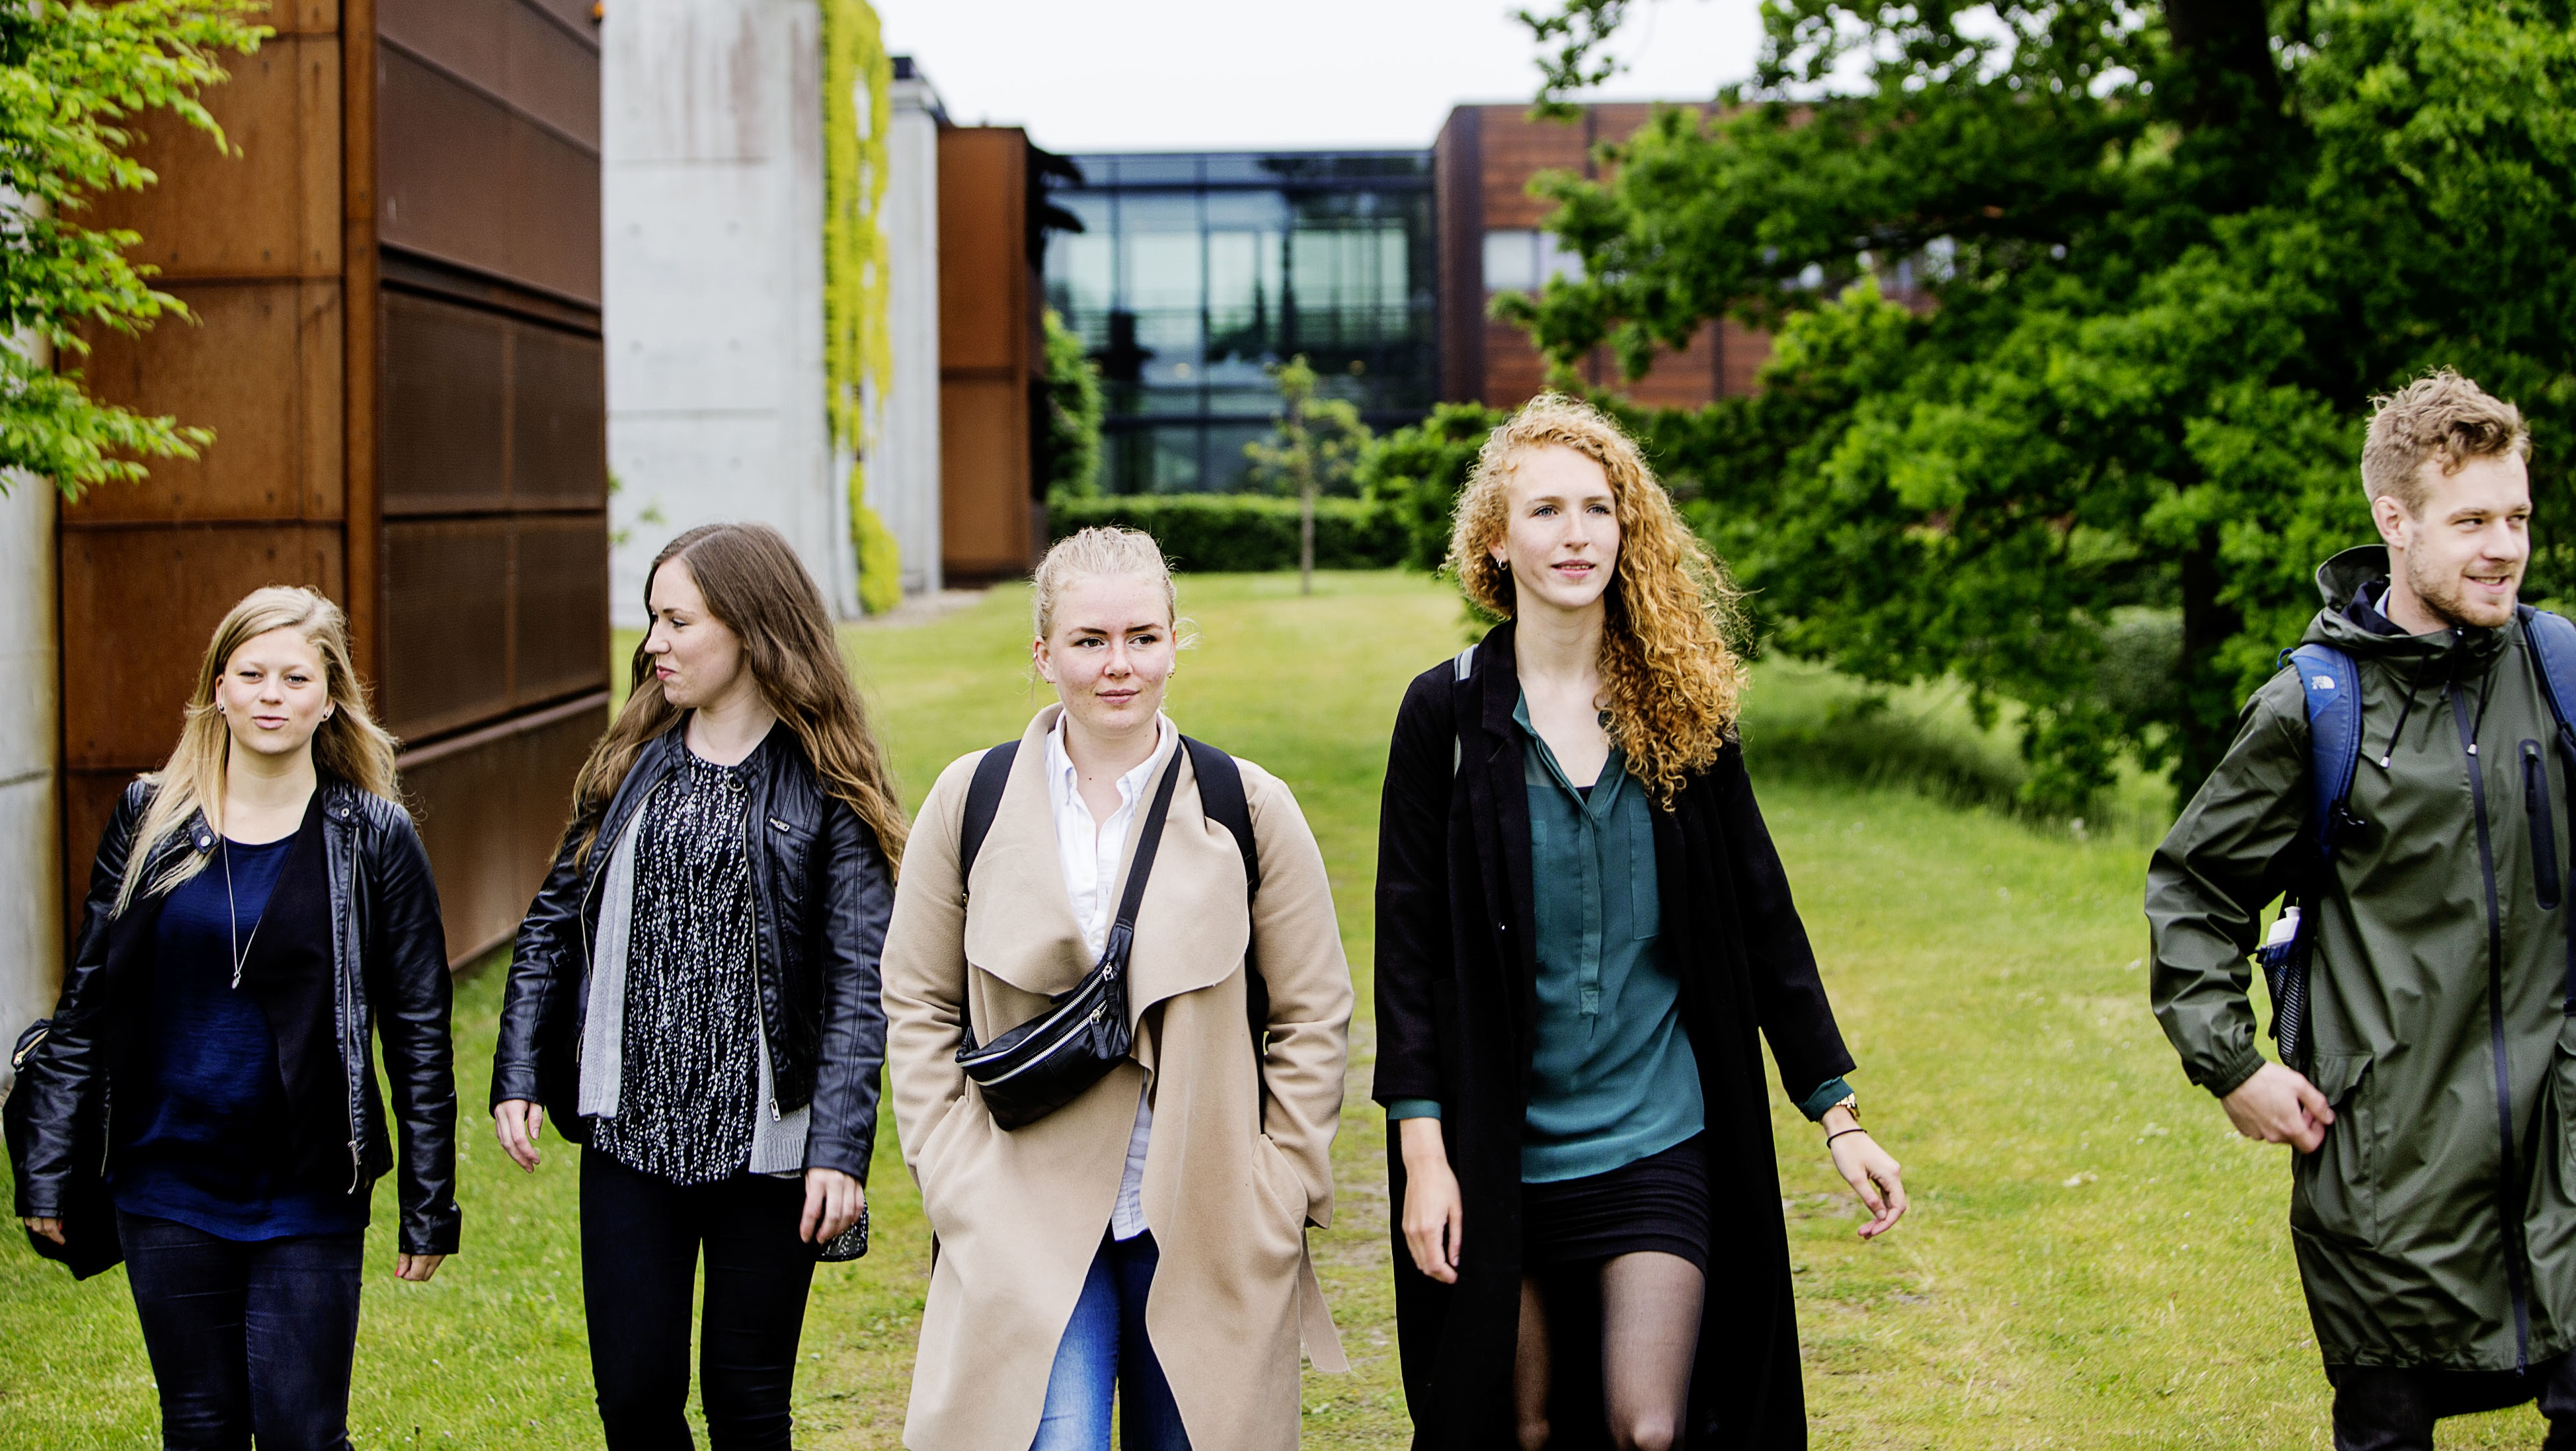 University of Southern Denmark: A great place to receive an academic education